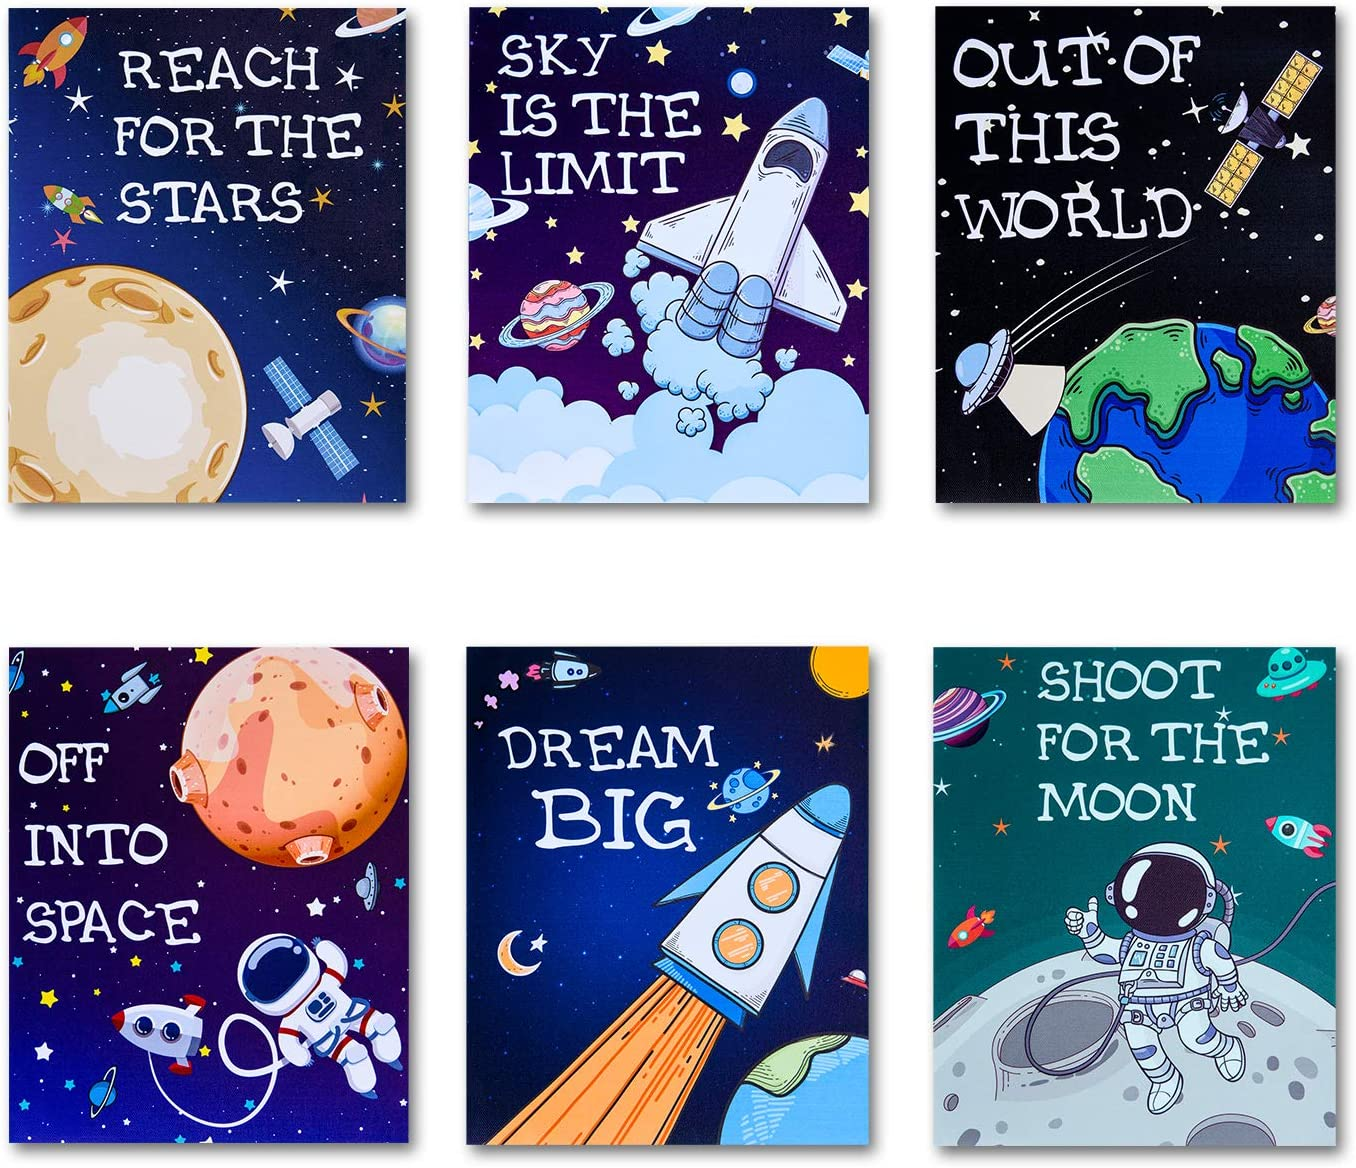 HERZOME Outer Space Room Decor for Boys Girls, Canvas Kids Nursery Bedroom Space Posters Decor(Unframed) , 8 x 10 Inch, Inspirational Wall Art Decoration Playroom Nursery Room Décor - Set of 6